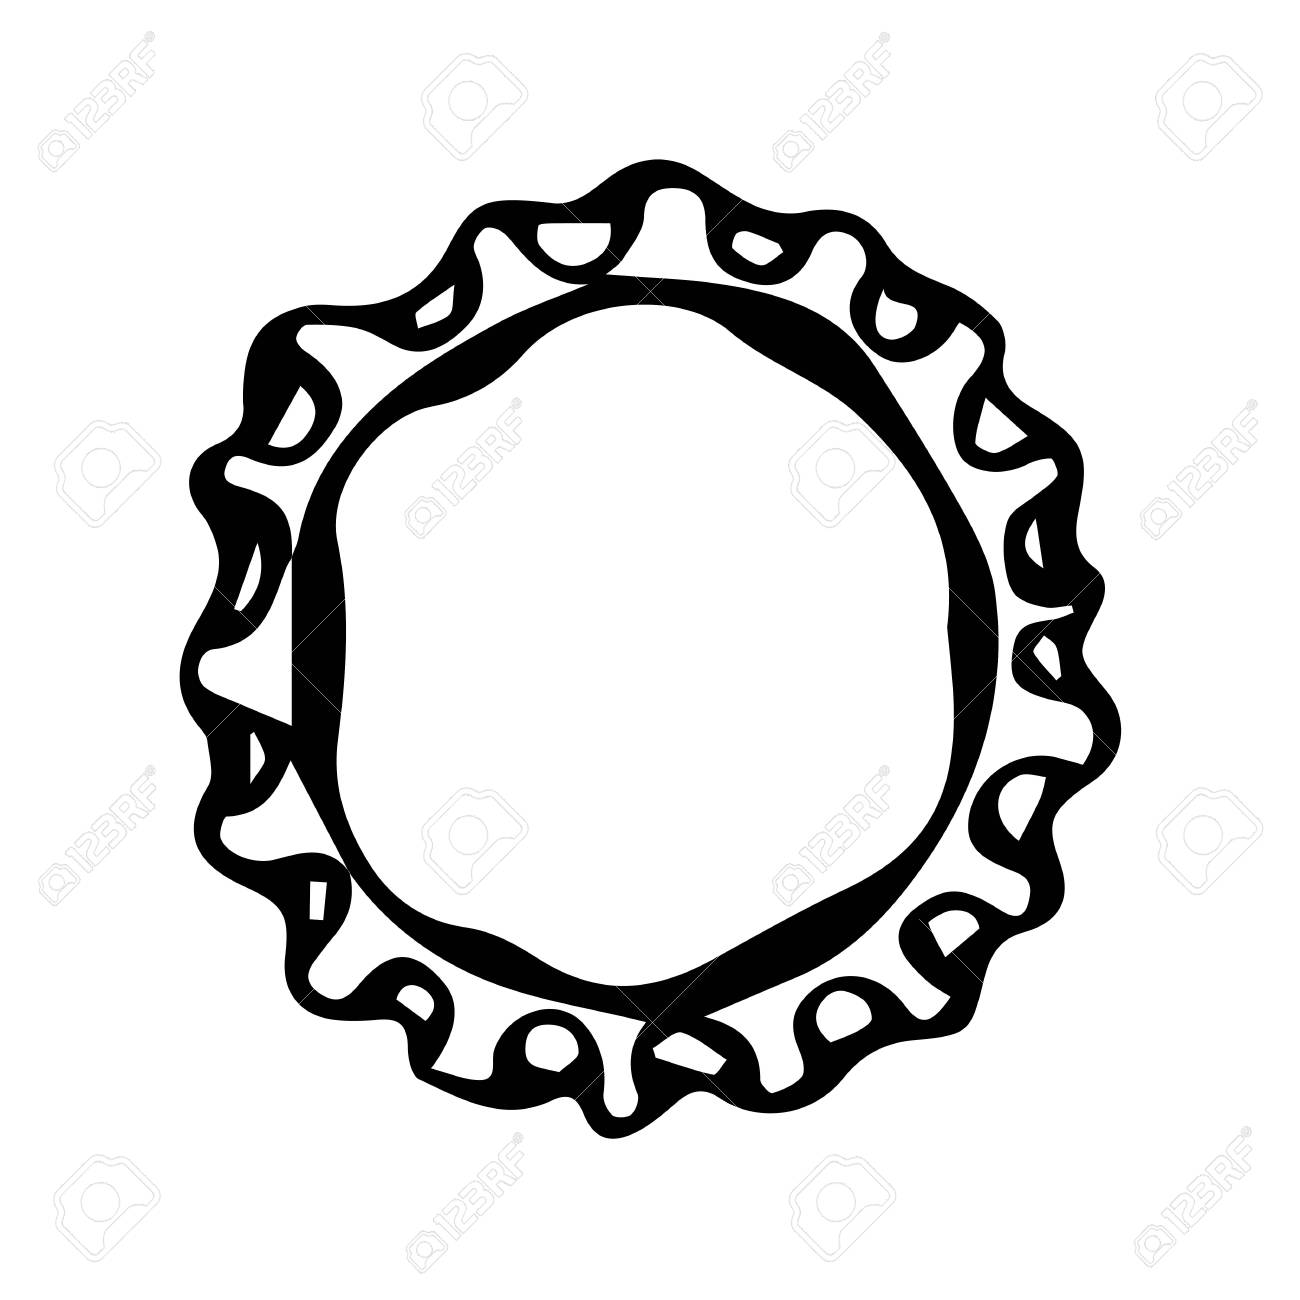 1300x1300 Beer Bottle Cap. Doodle Style Sketch. Vector Royalty Free Cliparts